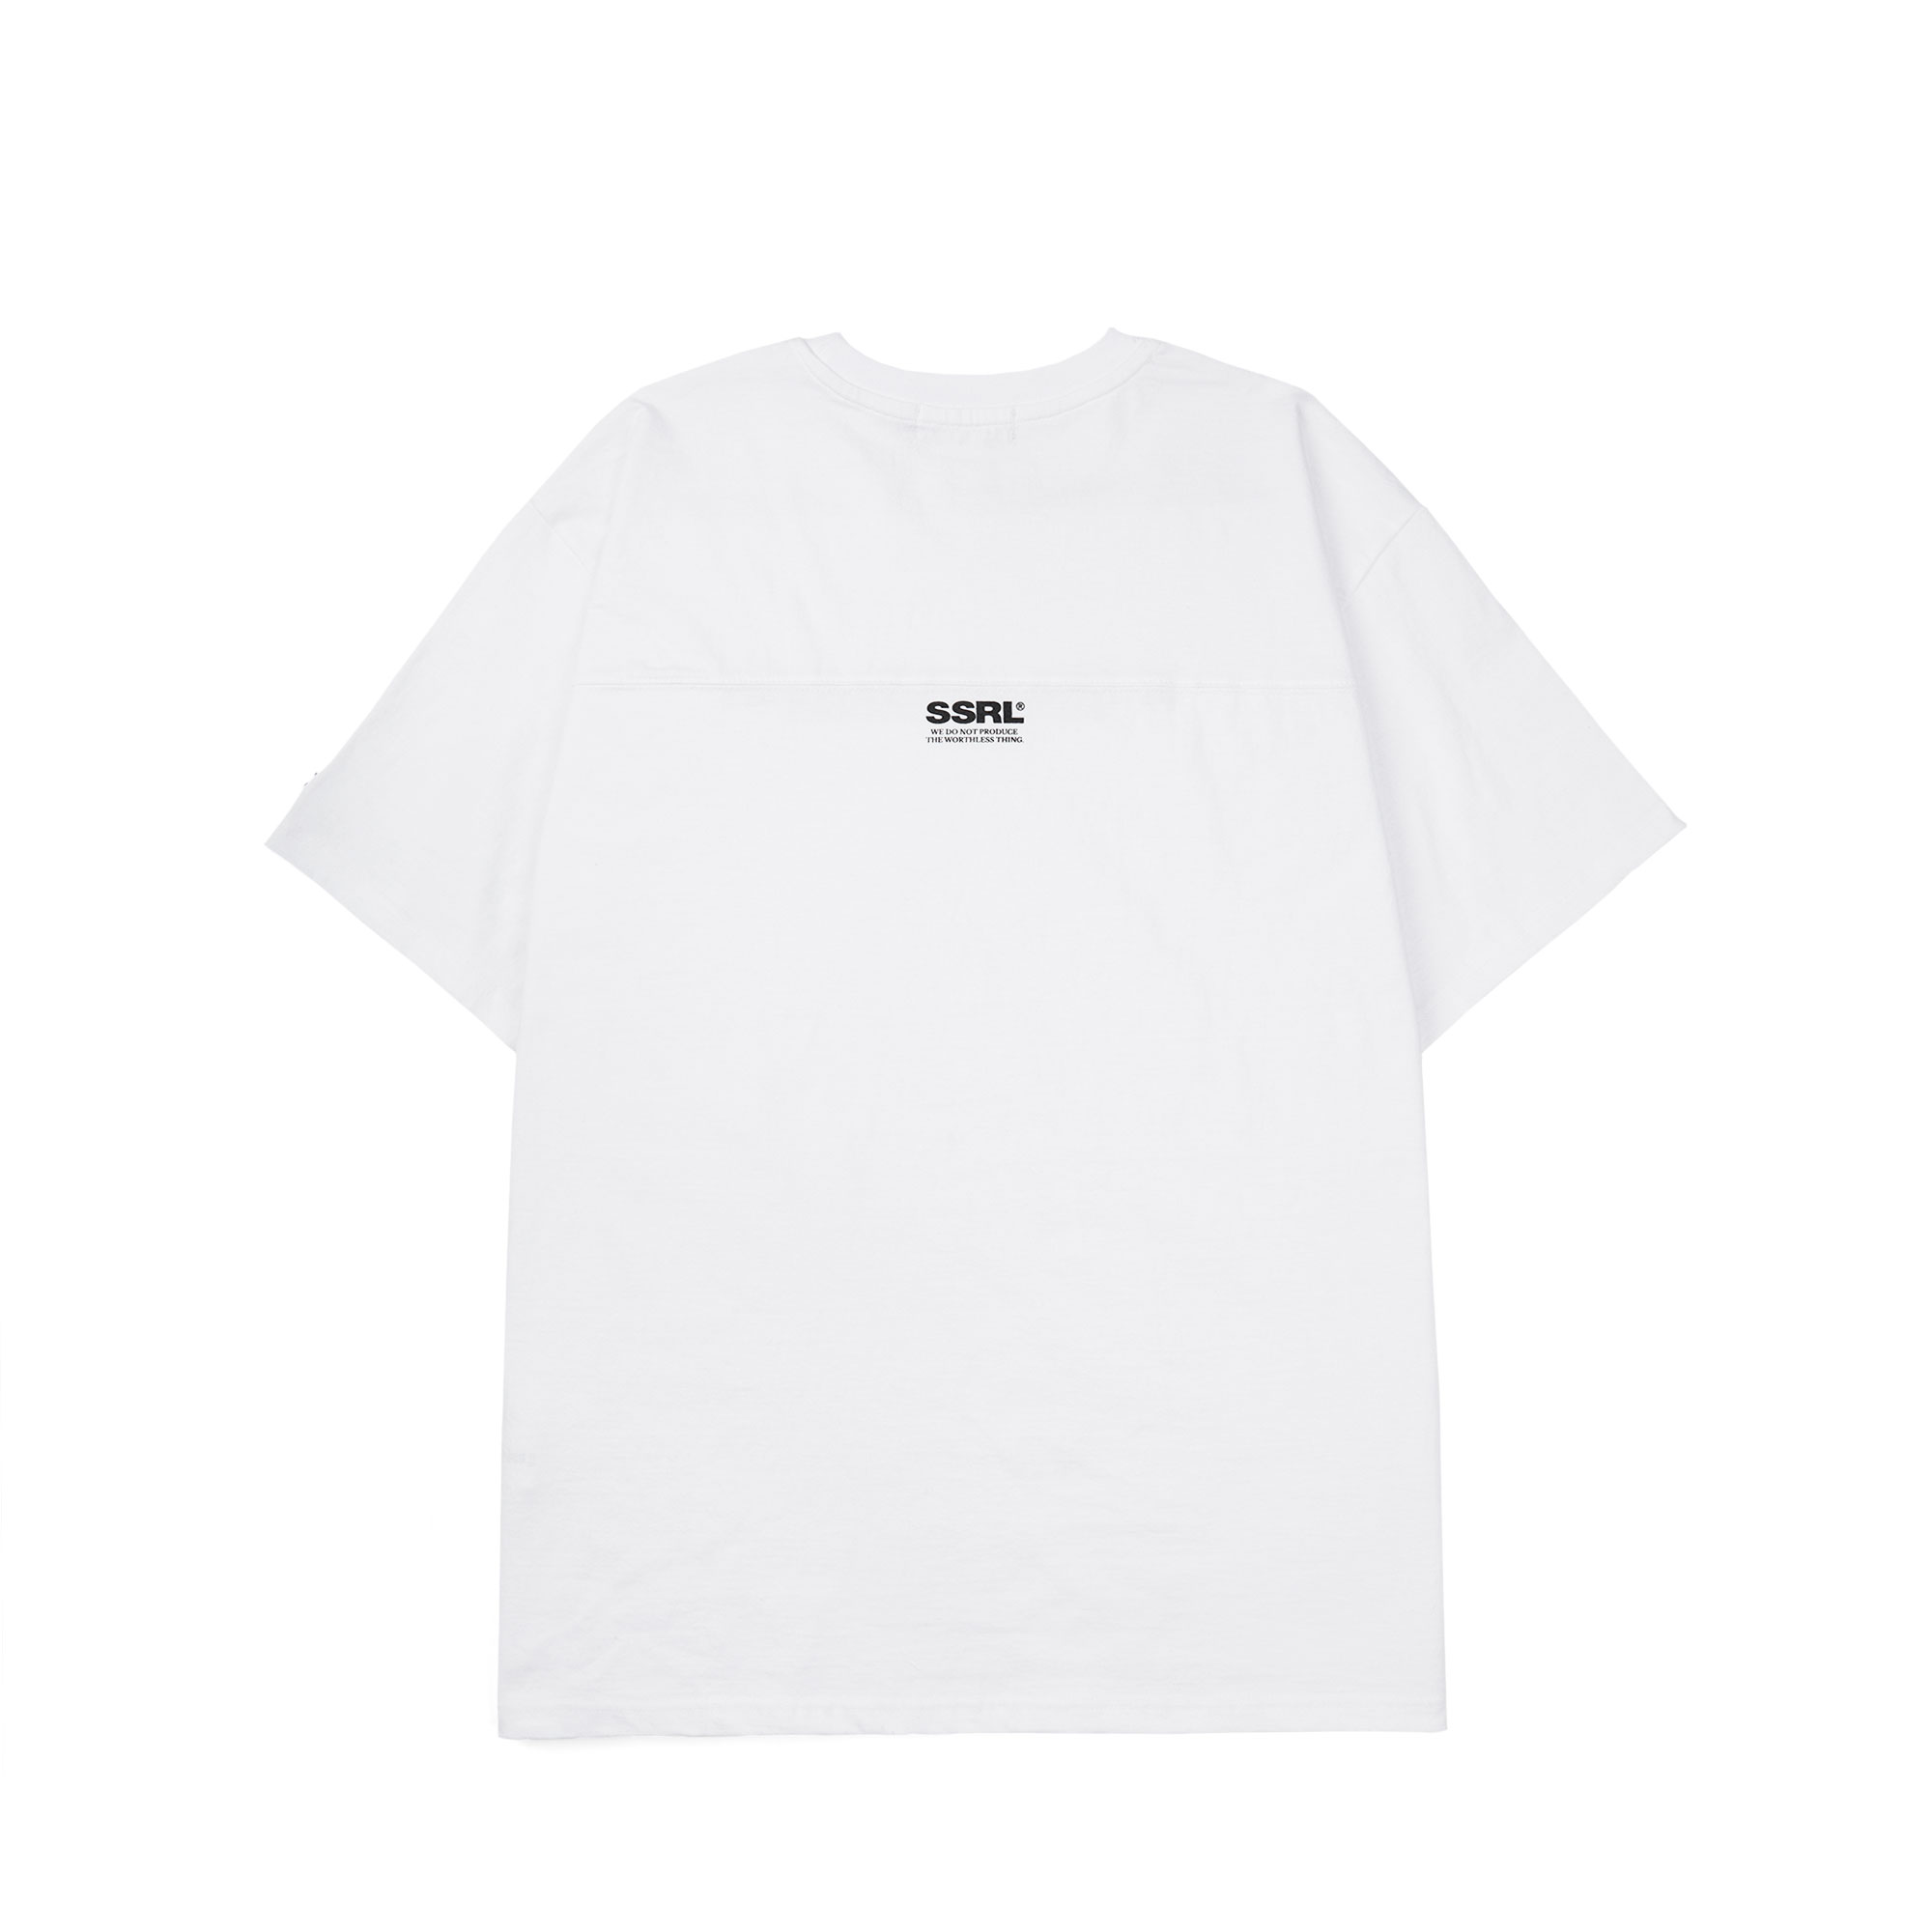 archive tee / white